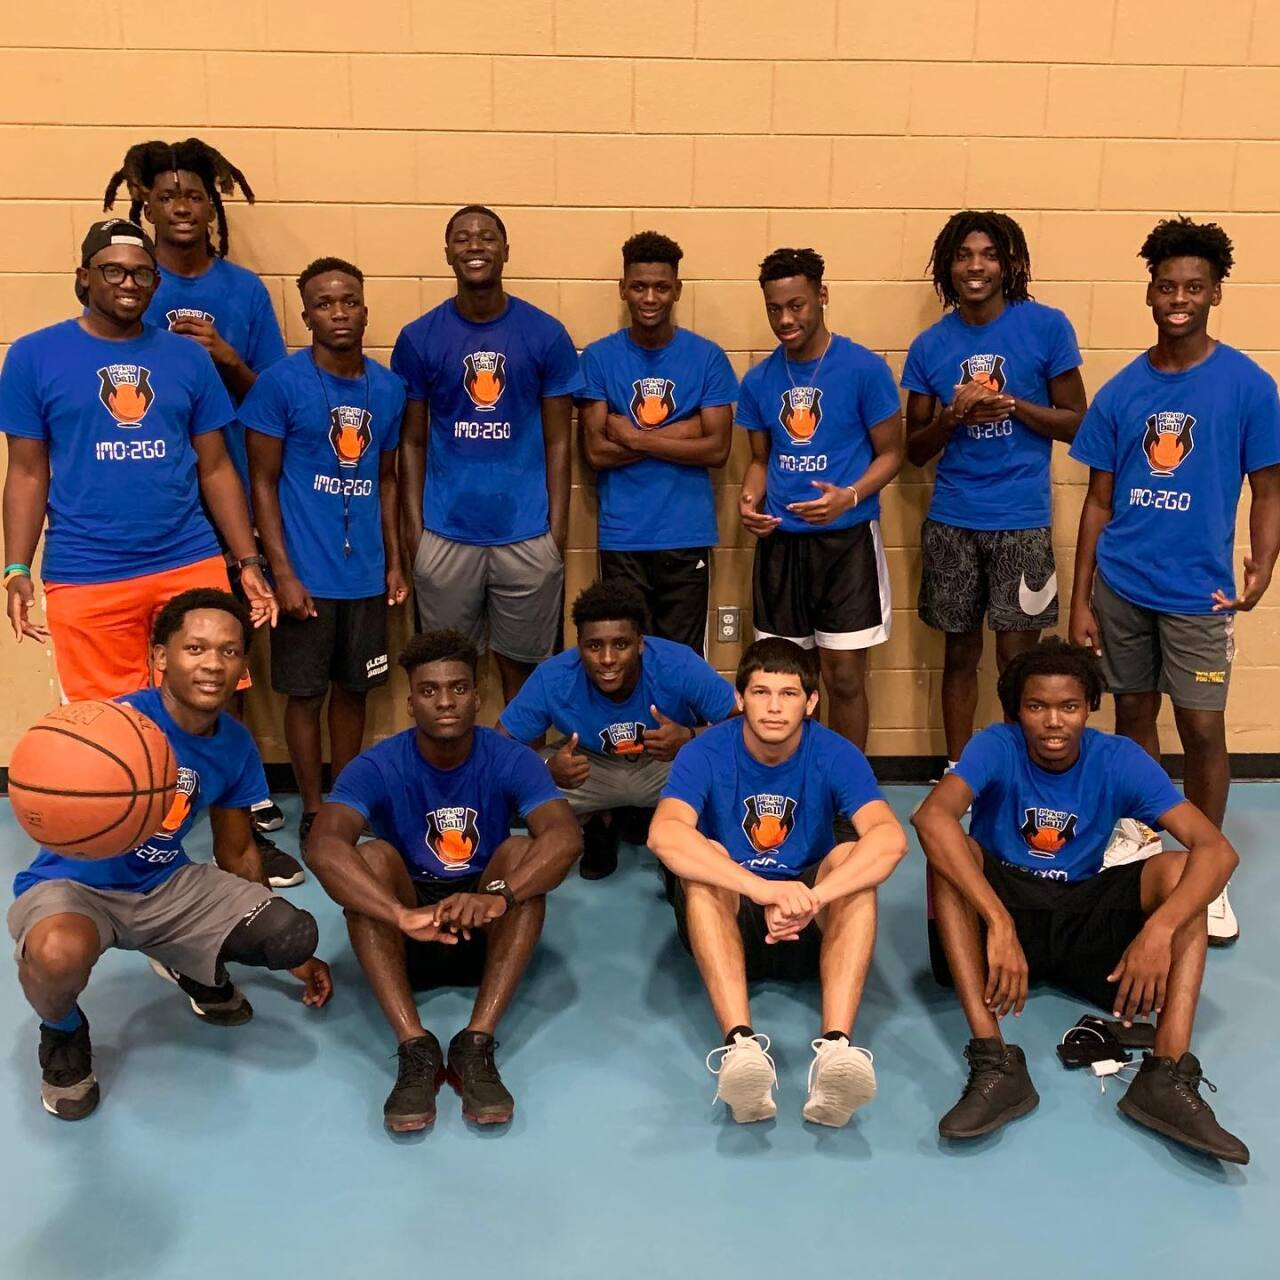 Pickup the Ball, Inc. supports young men through mentorship and basketball